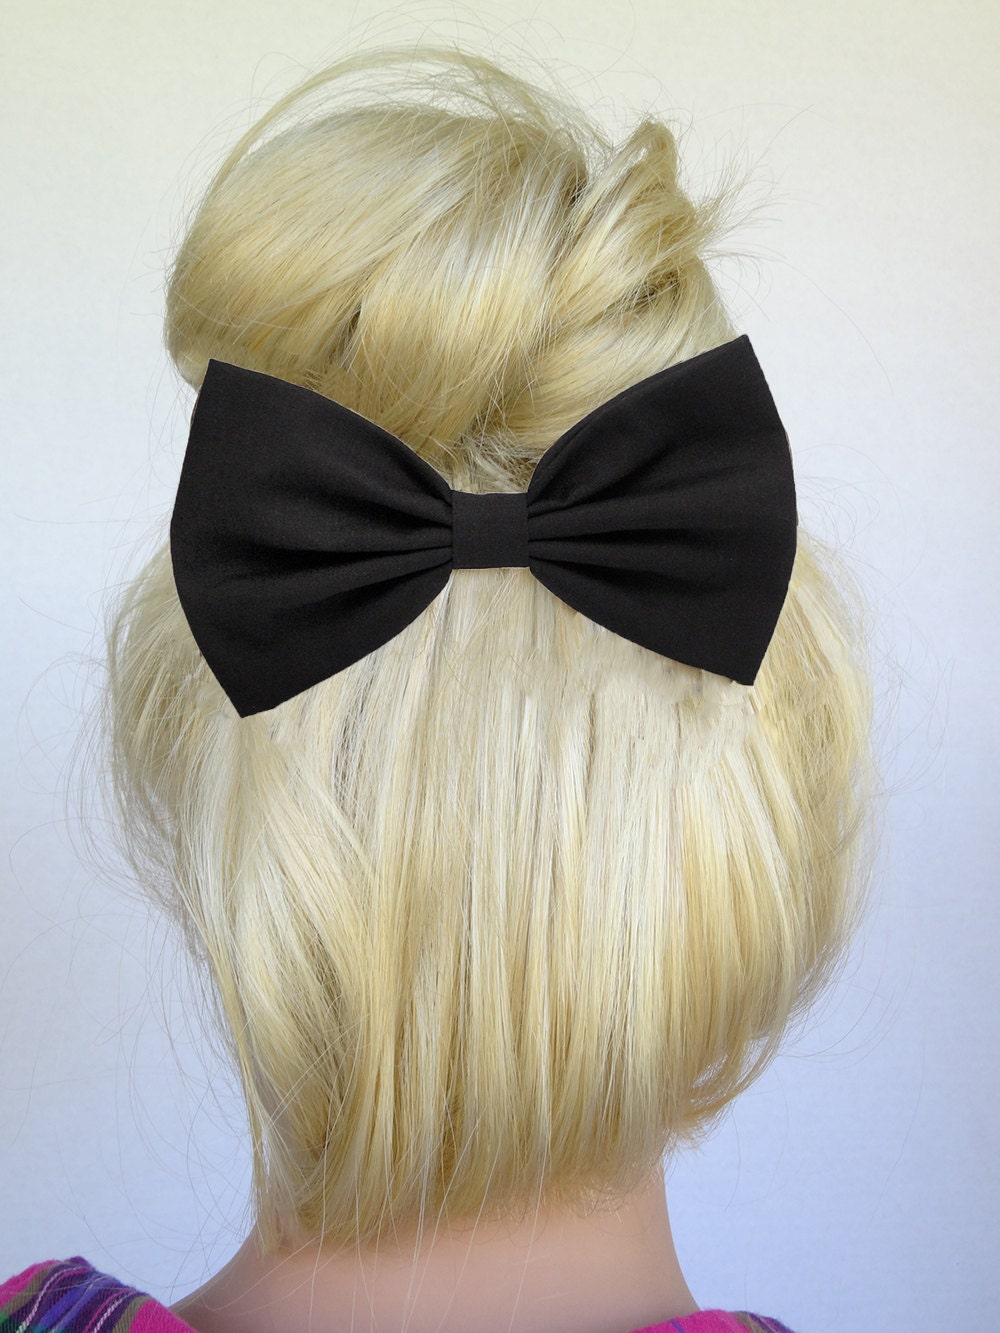 Apr 10,  · Well, that's what a lot of people say about bow hair but it really has to do with the coarseness of the hair. For a loose rule of thumb, black is more coarse than white but .